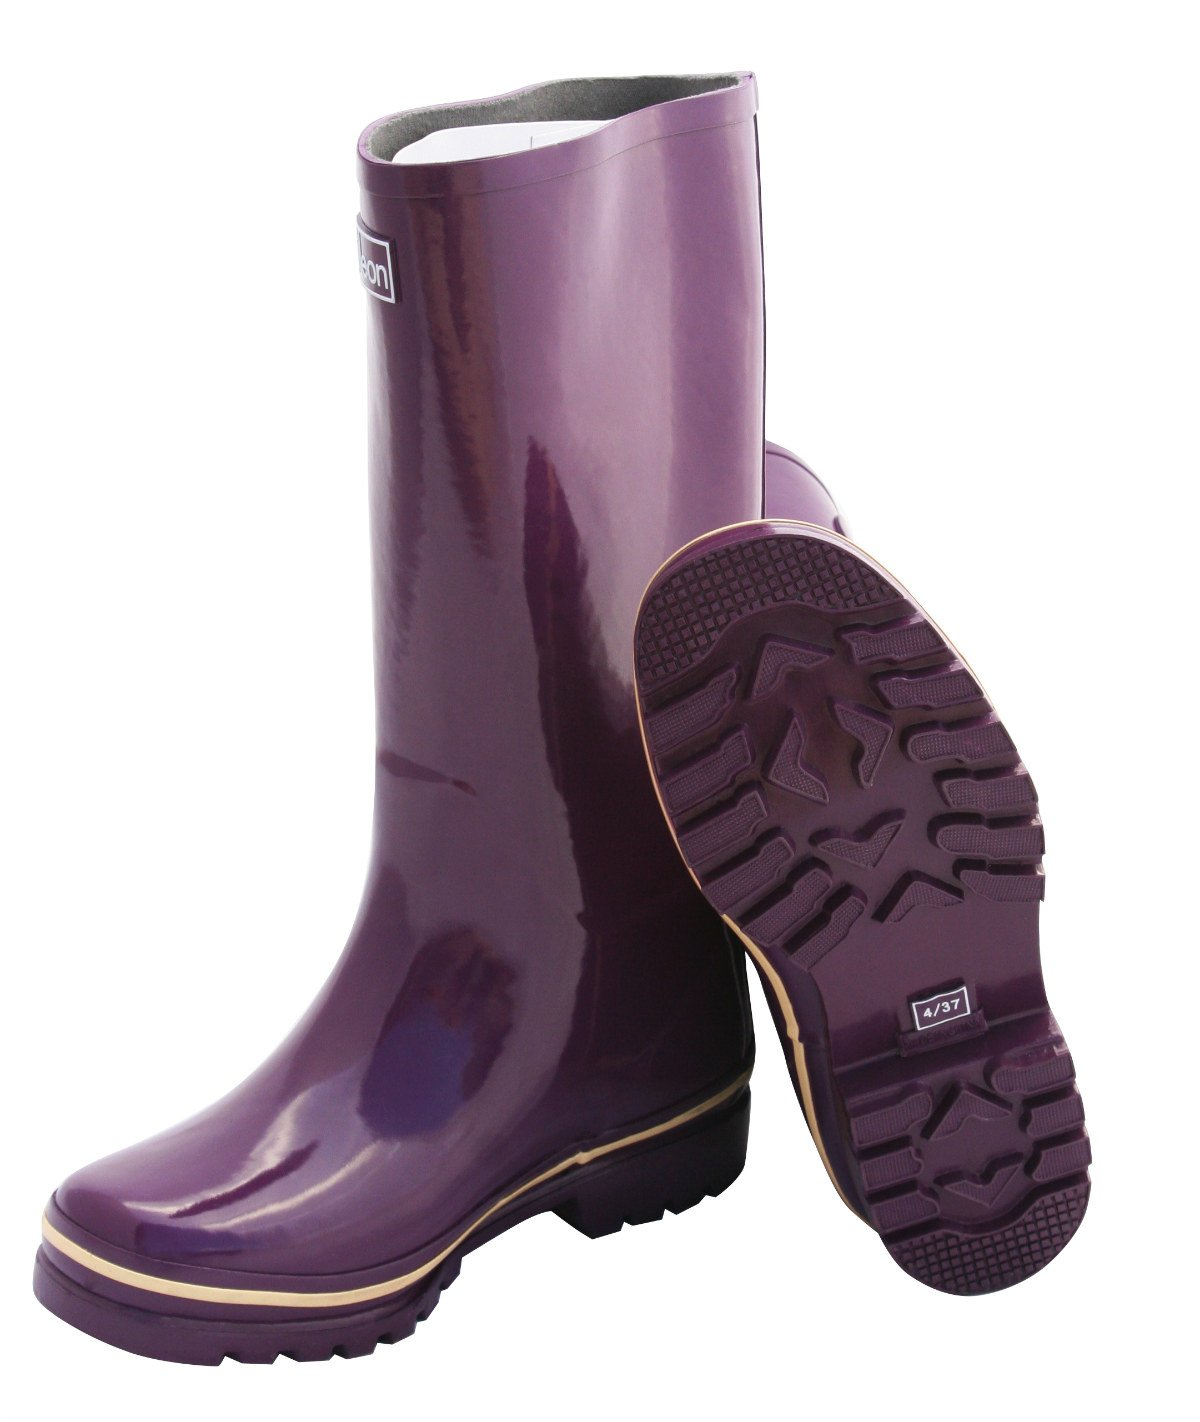 Jileon Wide Calf All Weather Durable Rubber Rain Boots for Women-Soft & Fluffy Lining on The Inside–Fits Calf Sizes up to 18 inches (7 W (Wide) US, Purple Gloss) by Jileon (Image #4)